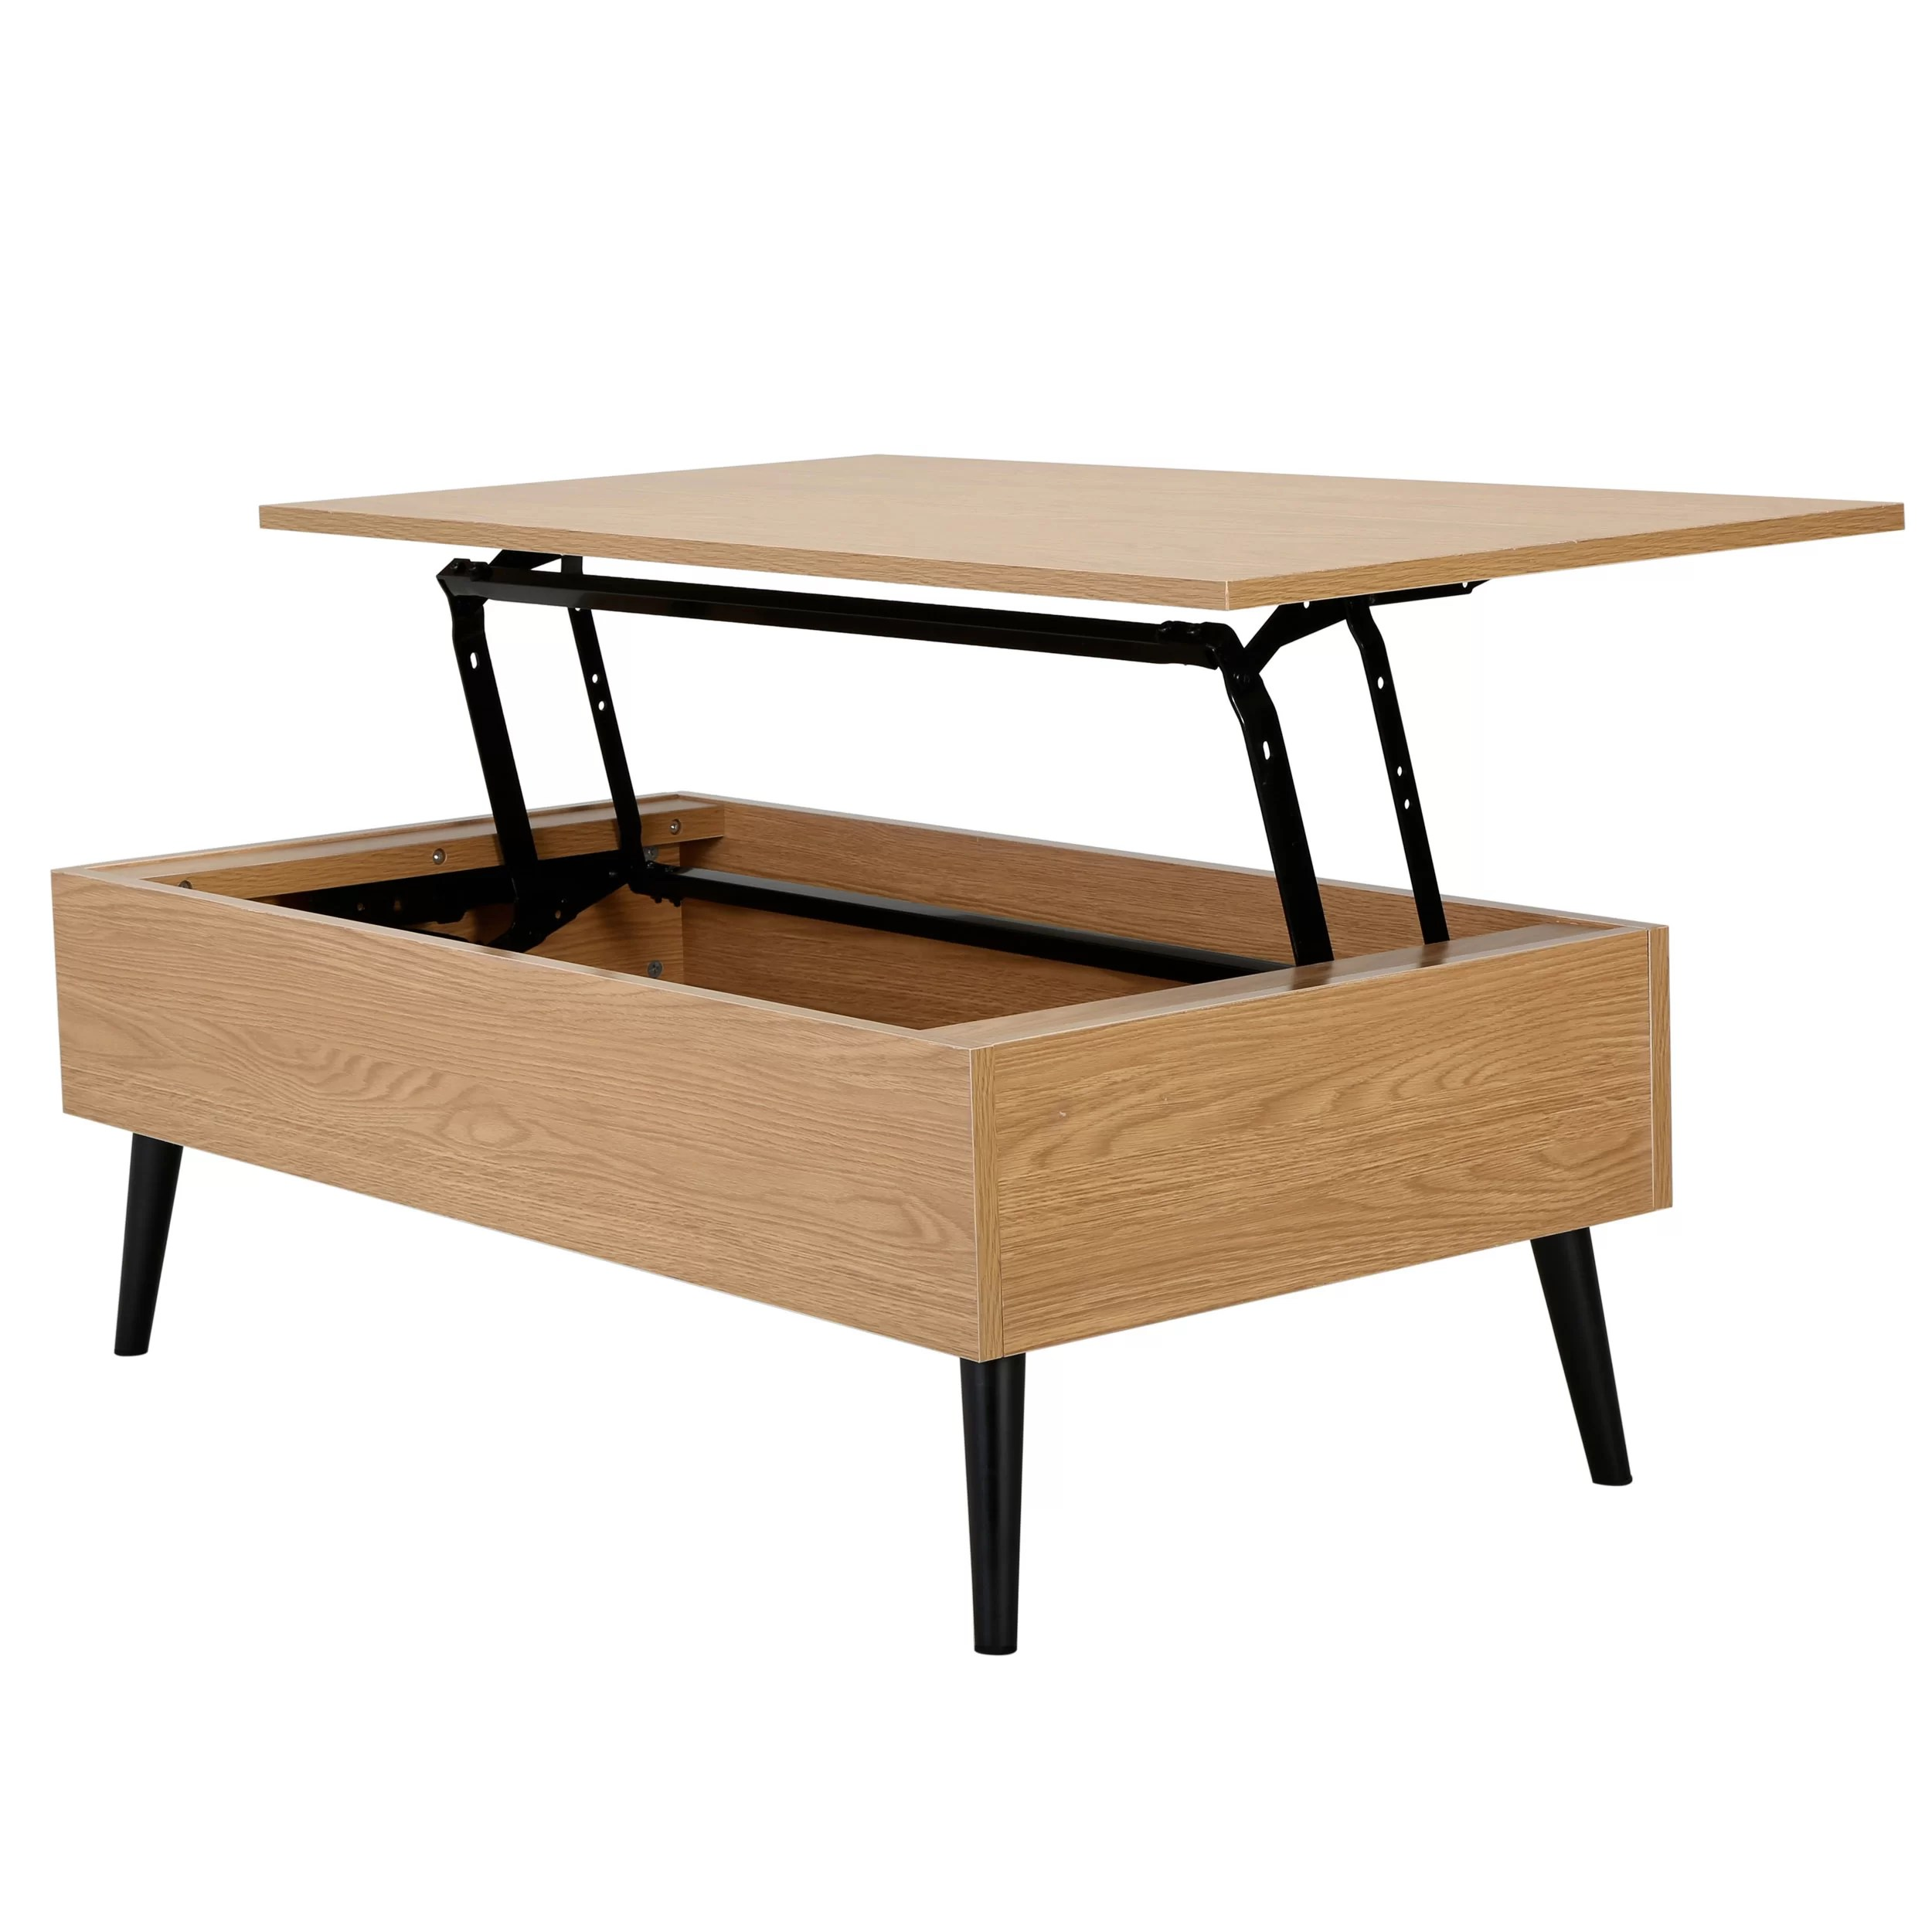 Top Lift Coffee Table Home Loft Concepts Henry Coffee Table With Lift Top